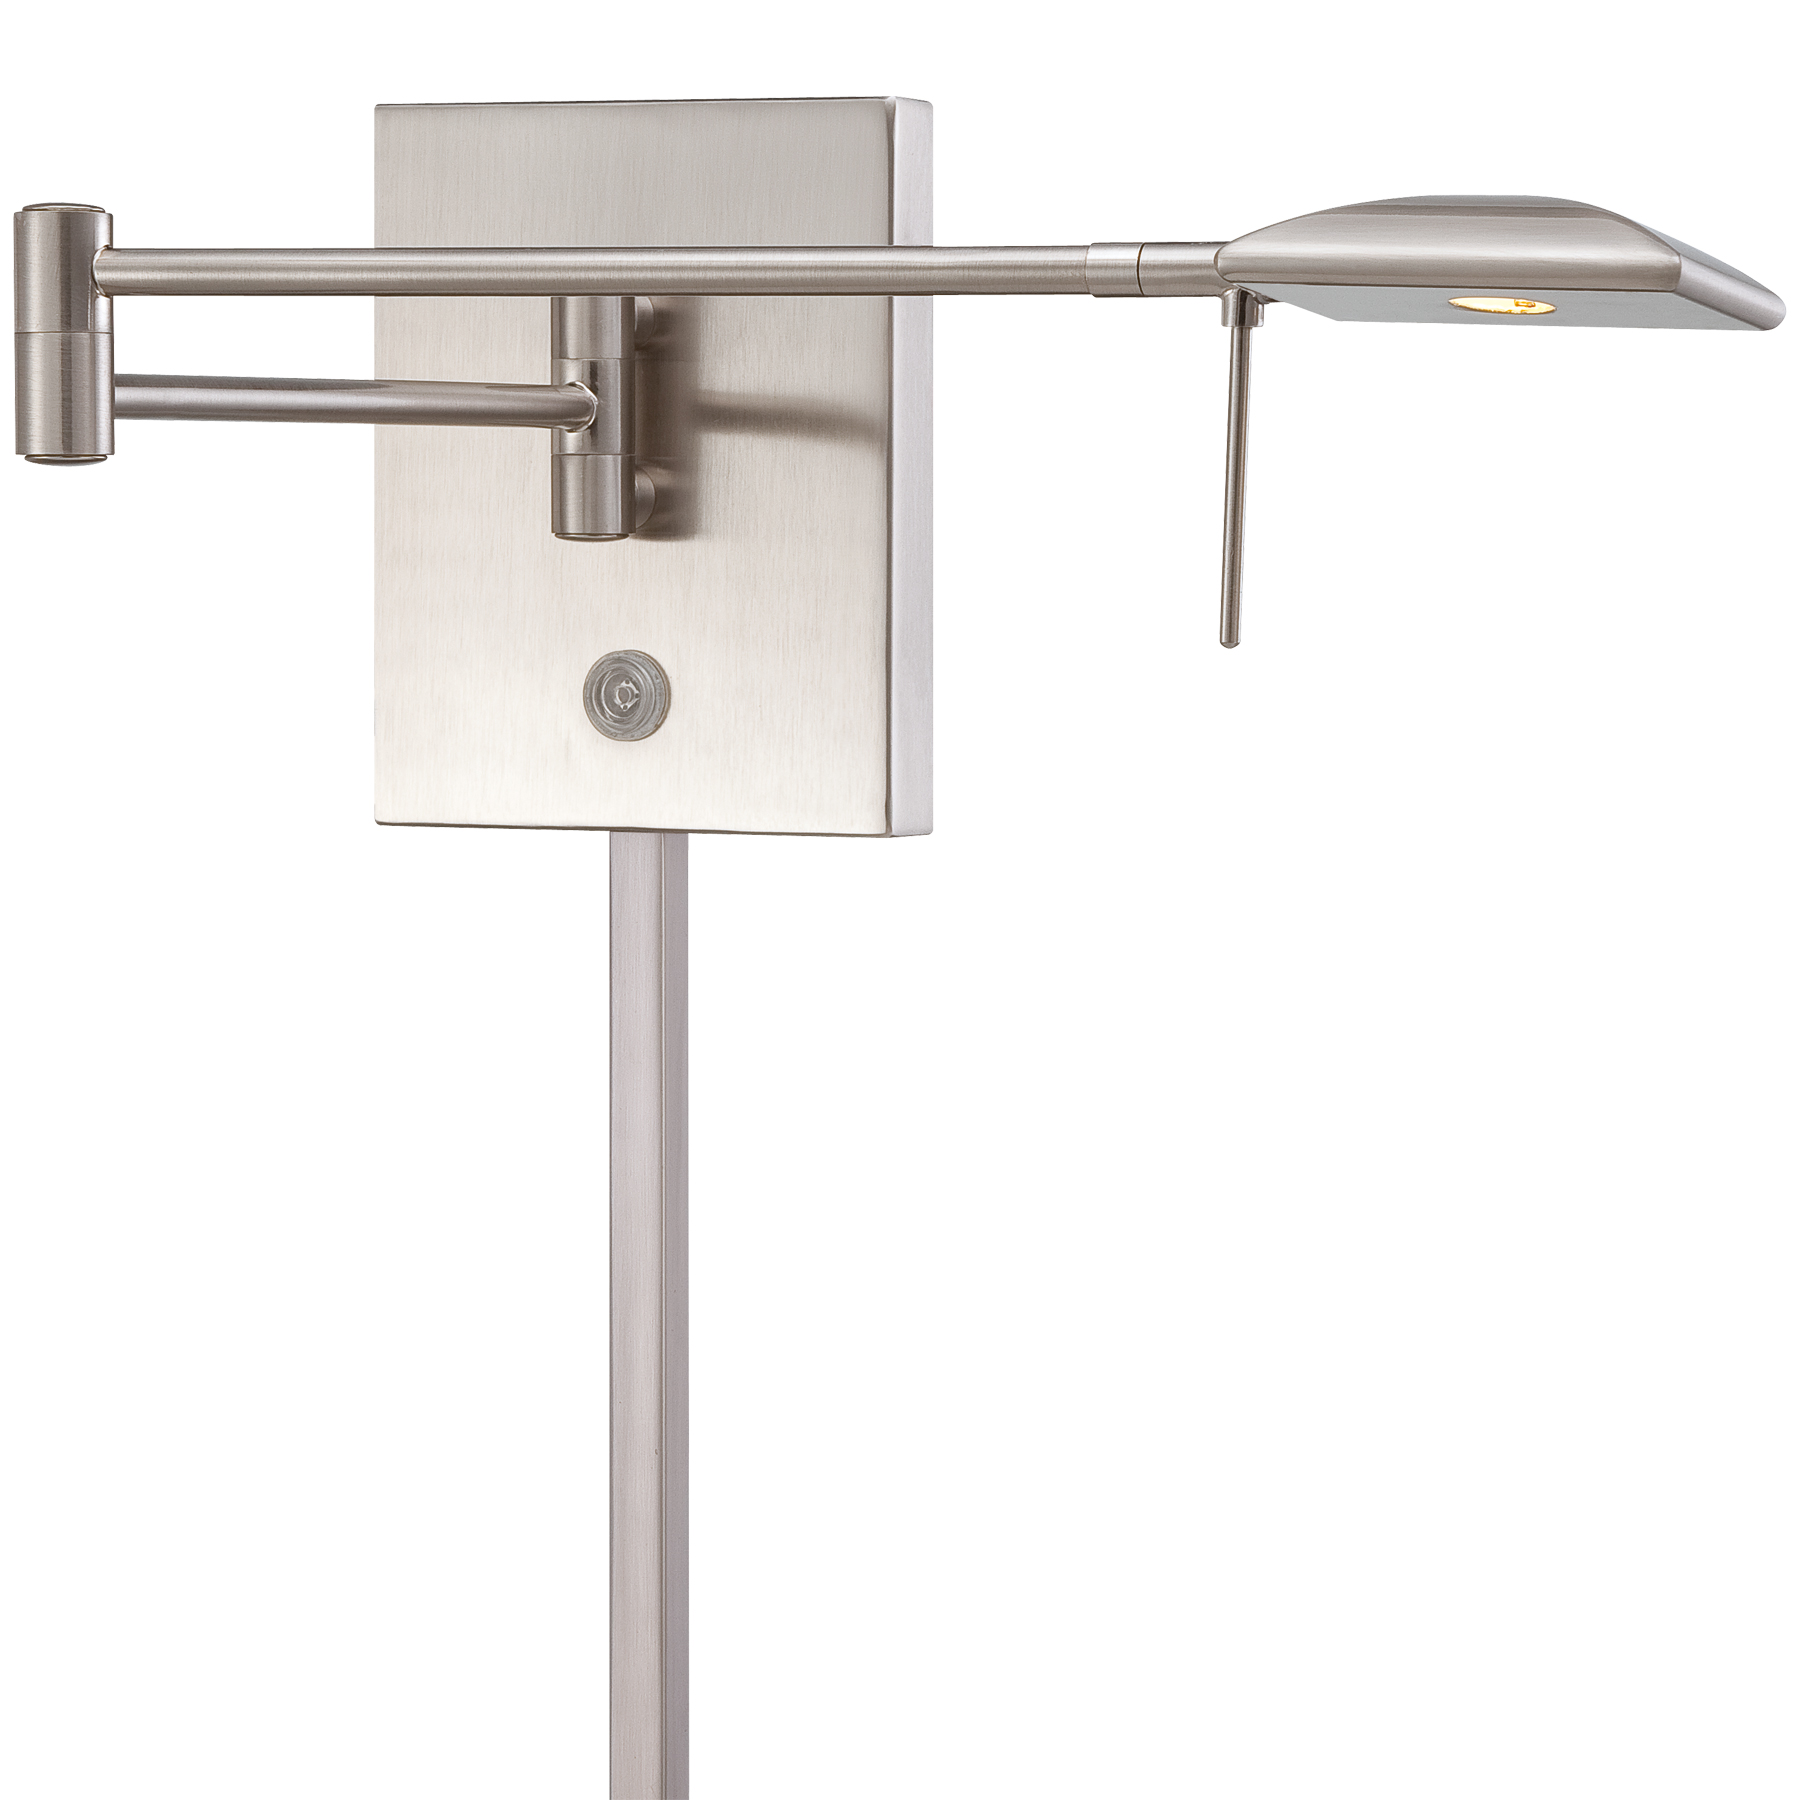 P4328 Led Swing Arm Wall Sconce By George Kovacs P4328 084